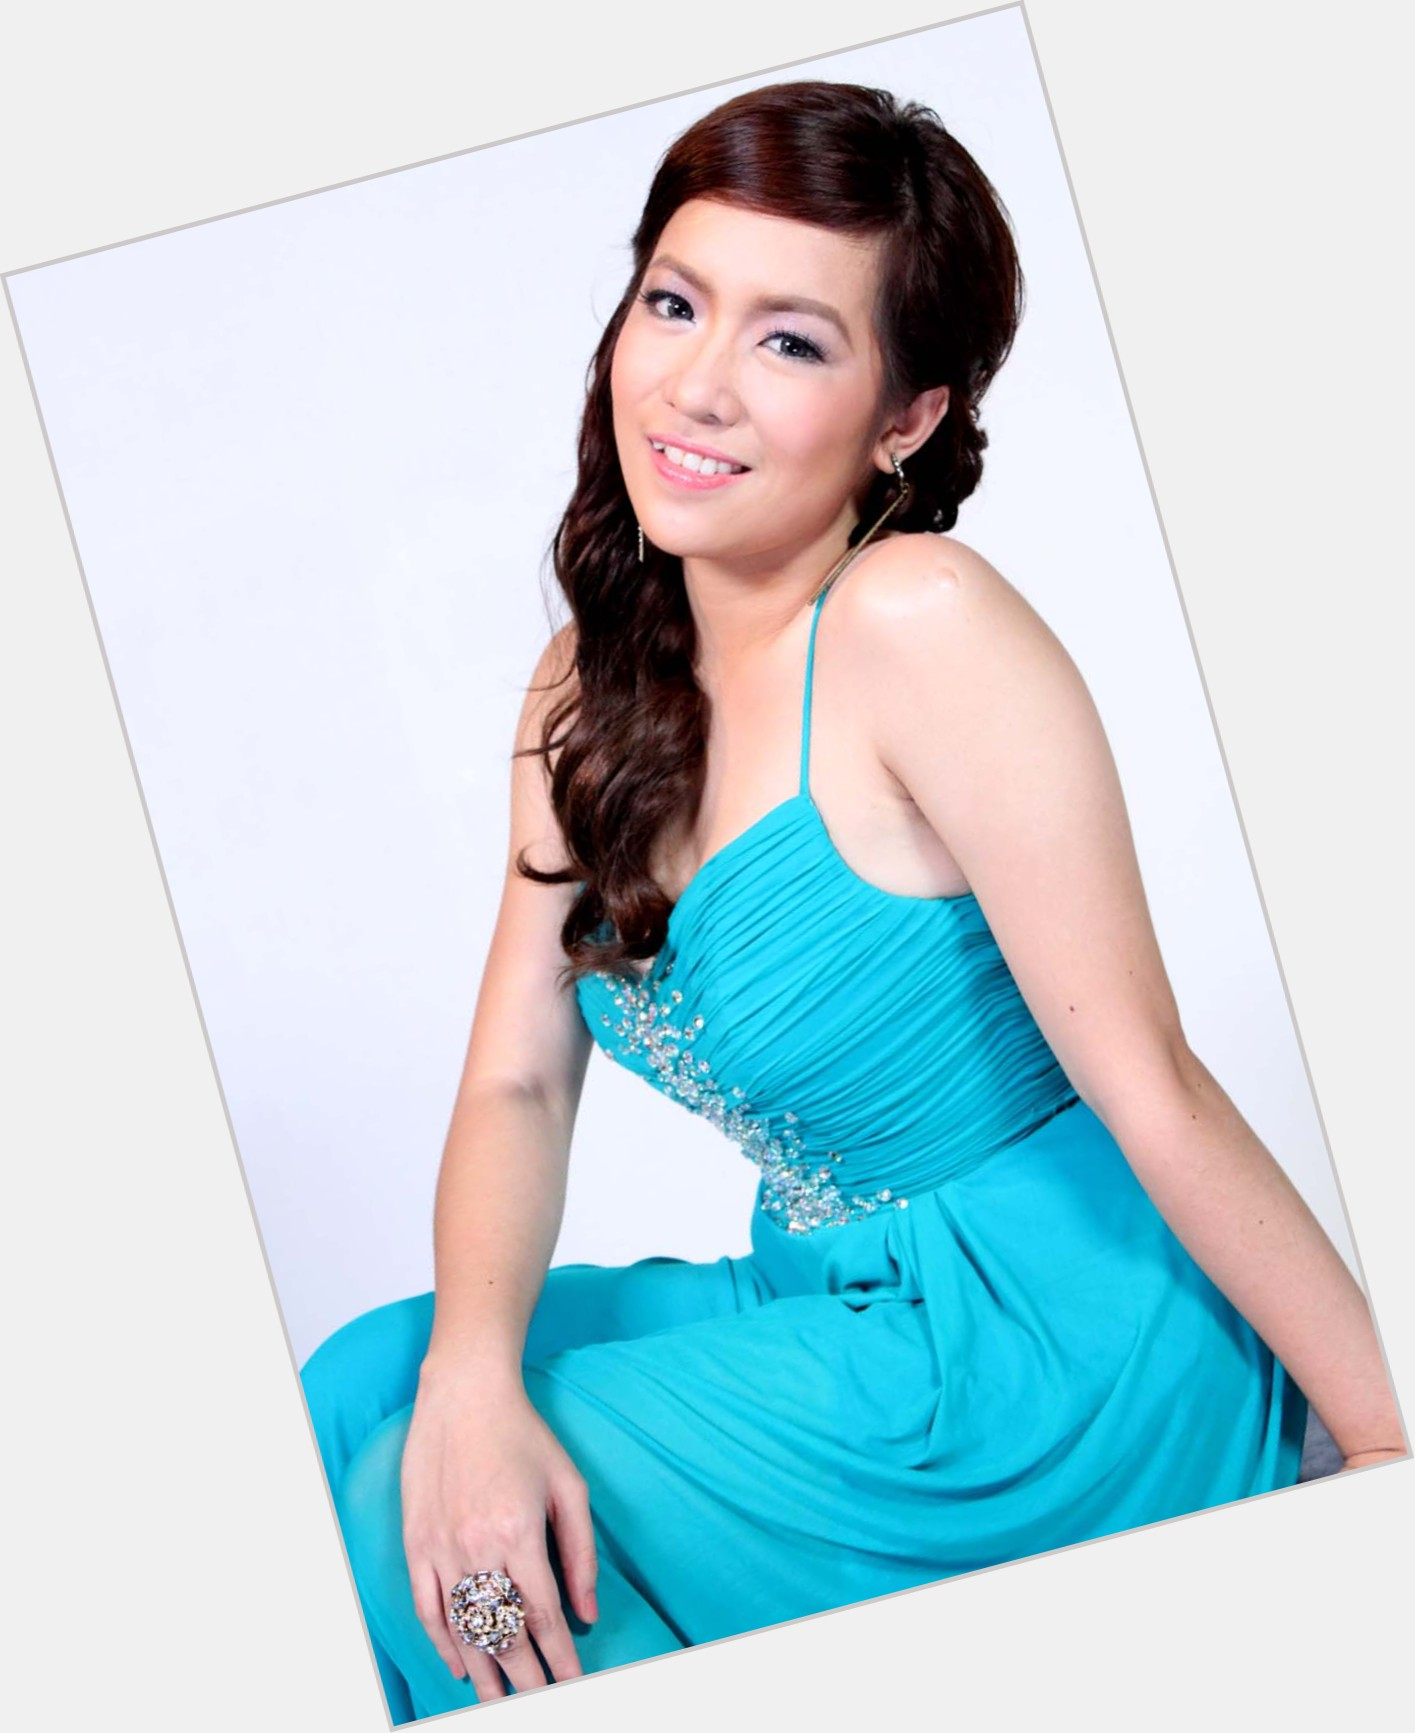 angeline quinto new hairstyles 8.jpg